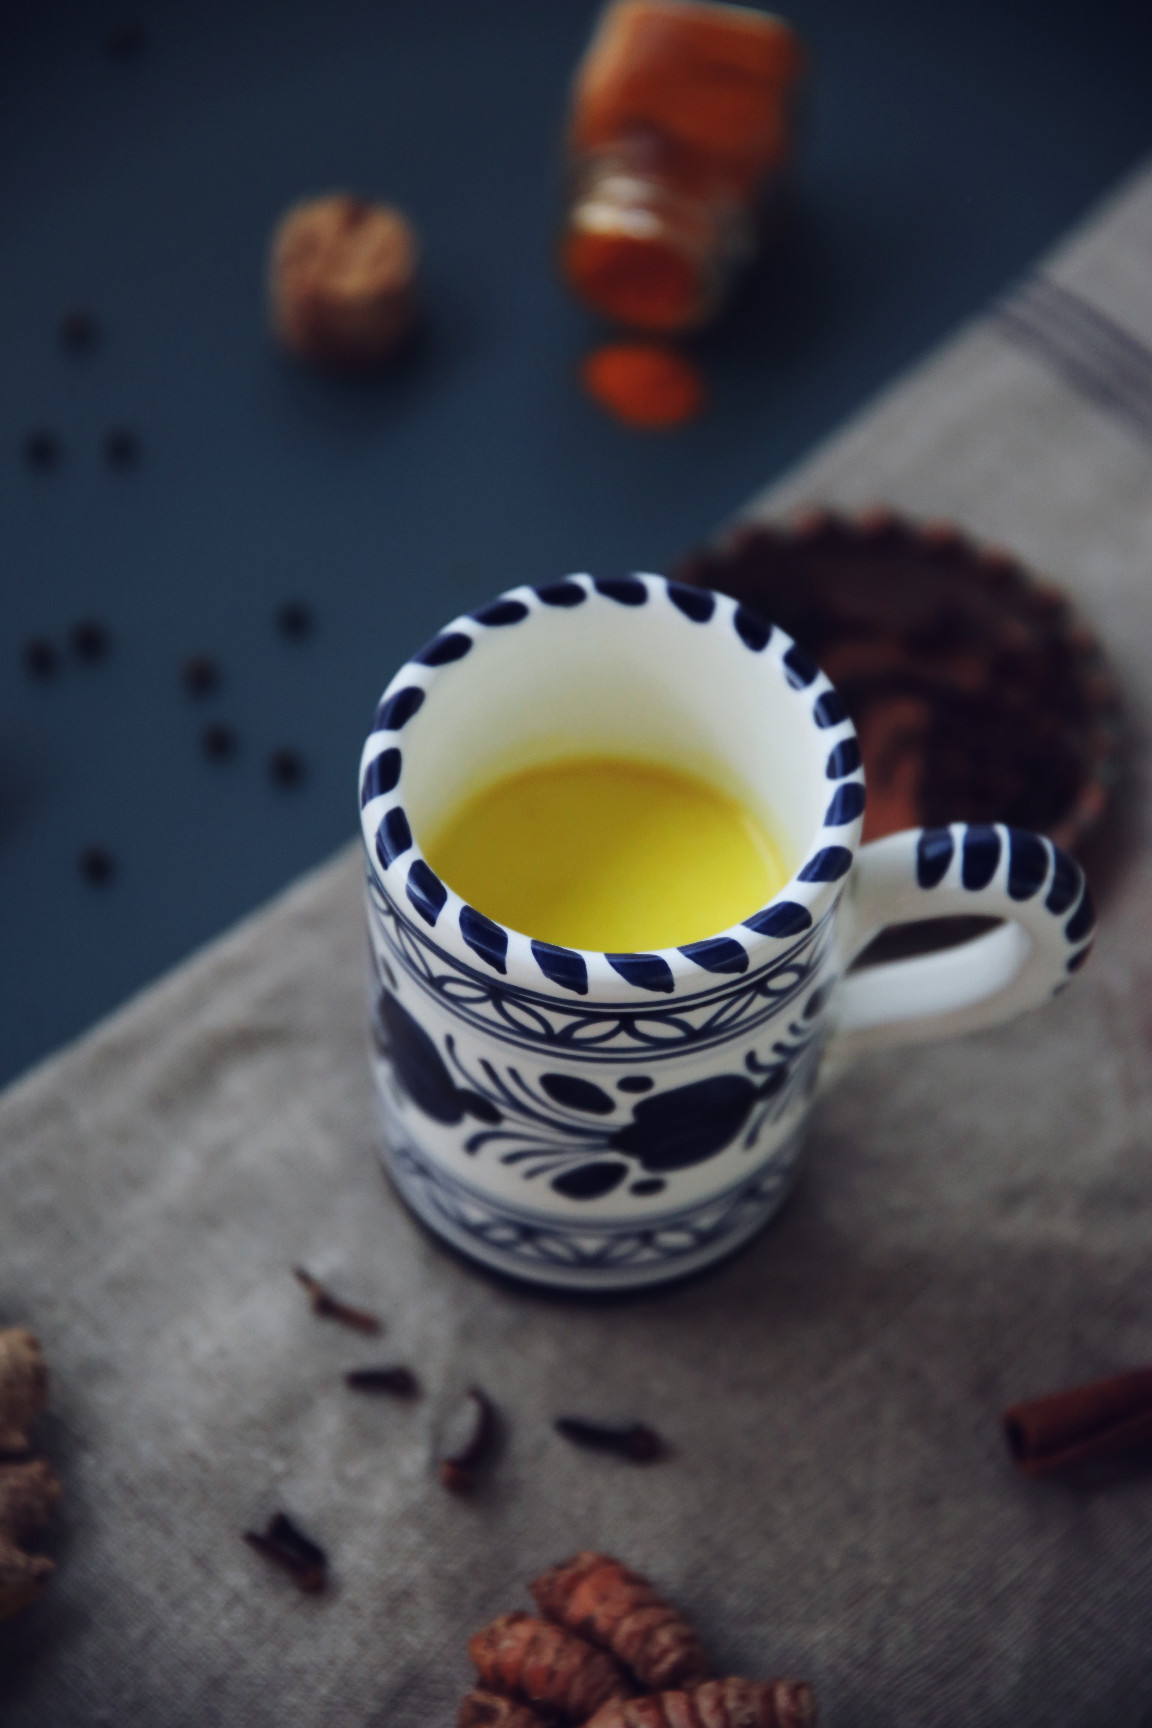 Golden milk   Turmeric milk   on Due fili d'erba   Two blades of grass   Recipe, styling and photo by Thais FK